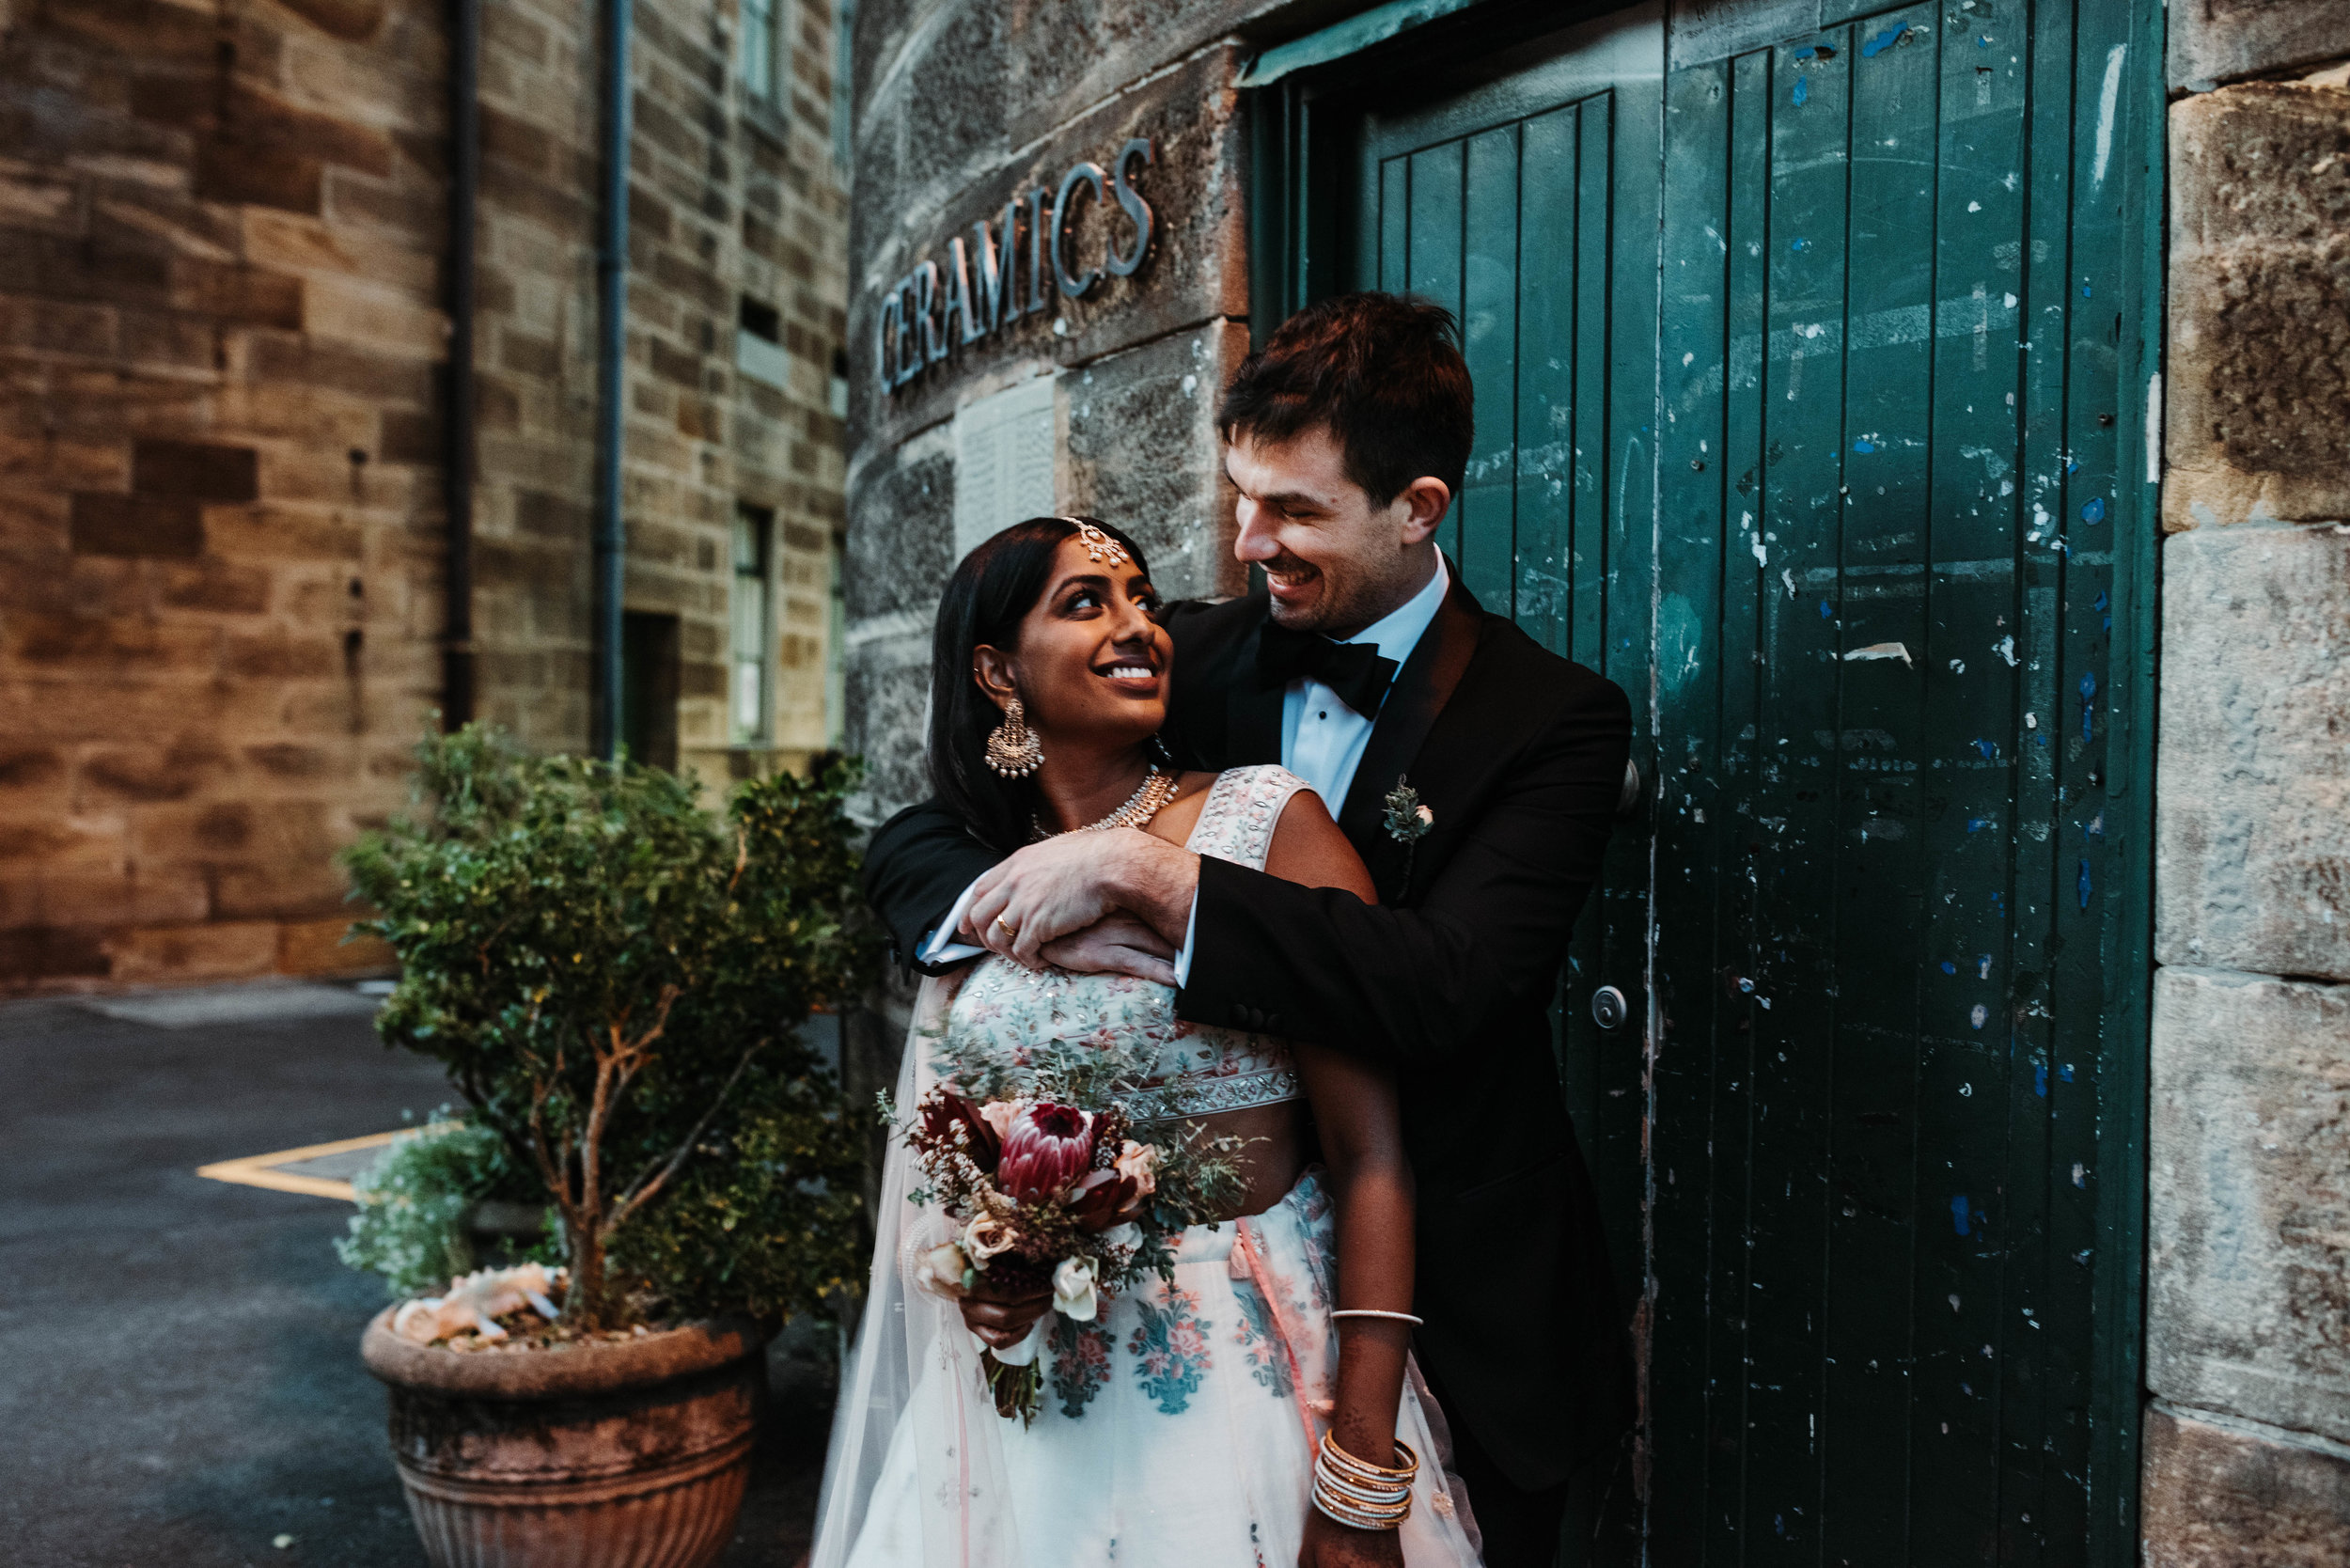 Thulasi & Erasmus - Cell Block Theatre, Sydney Wedding    30th March 2019